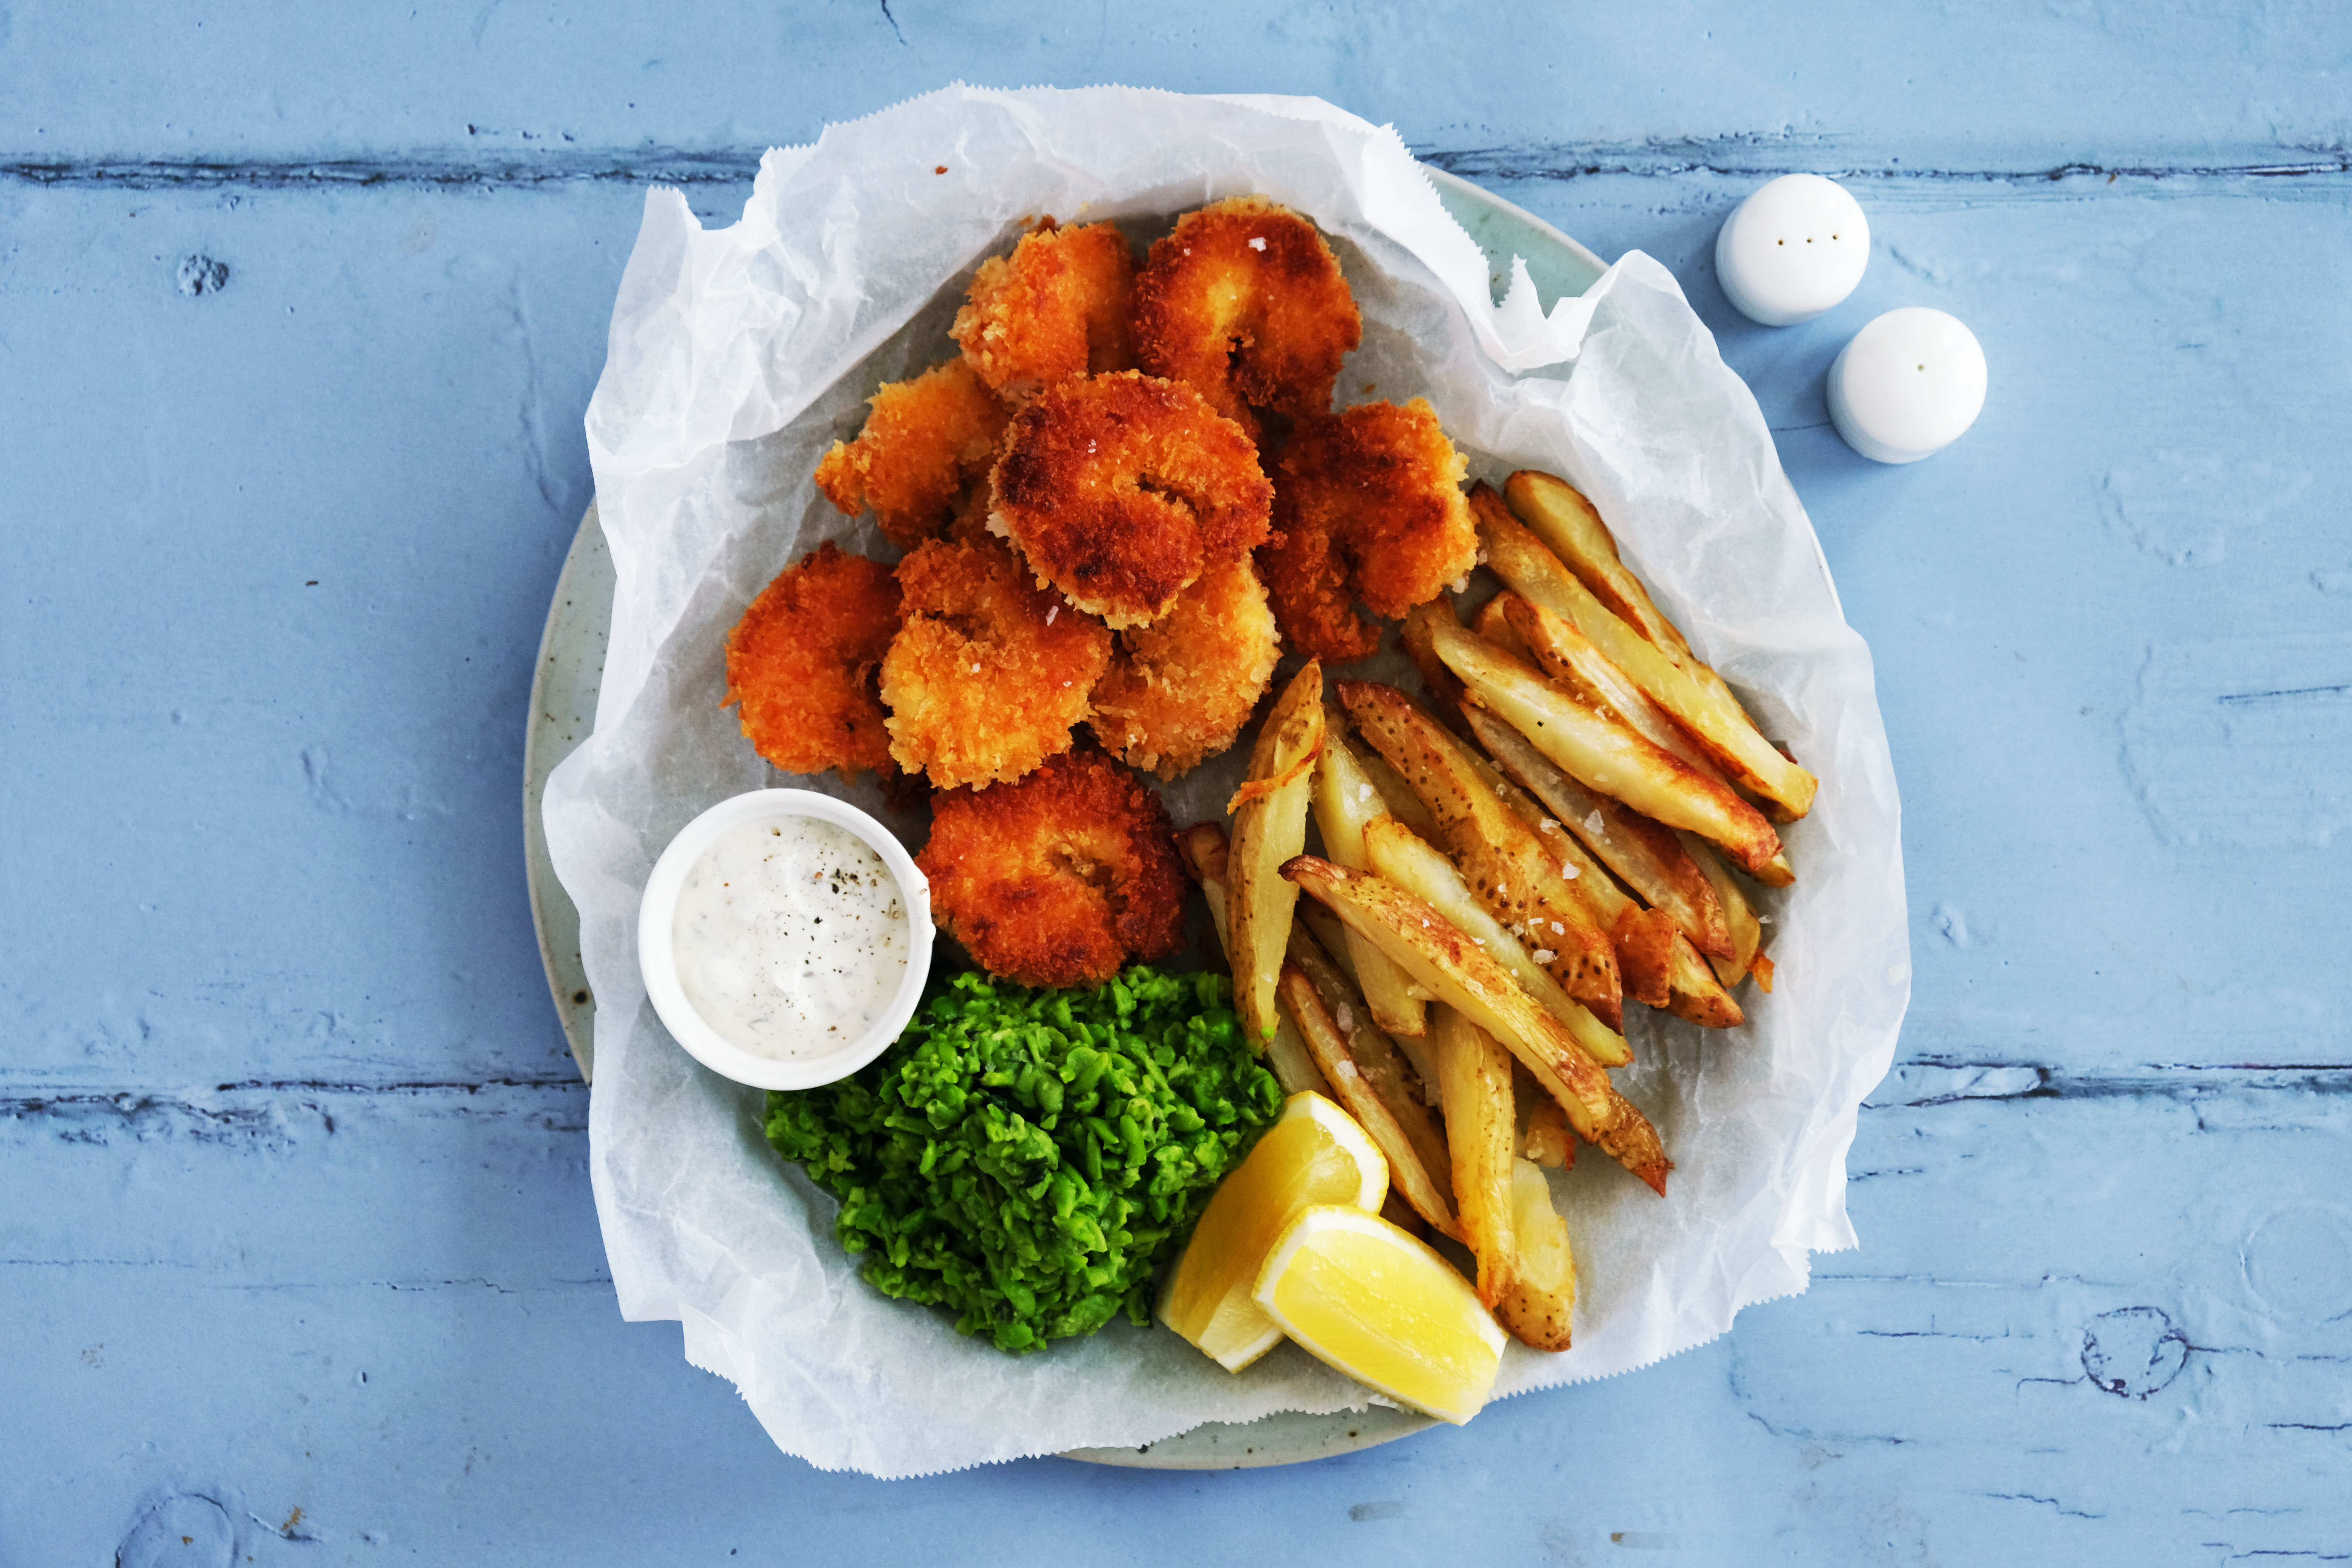 Scampi and Chips with Minty Peas and Tartare Sauce